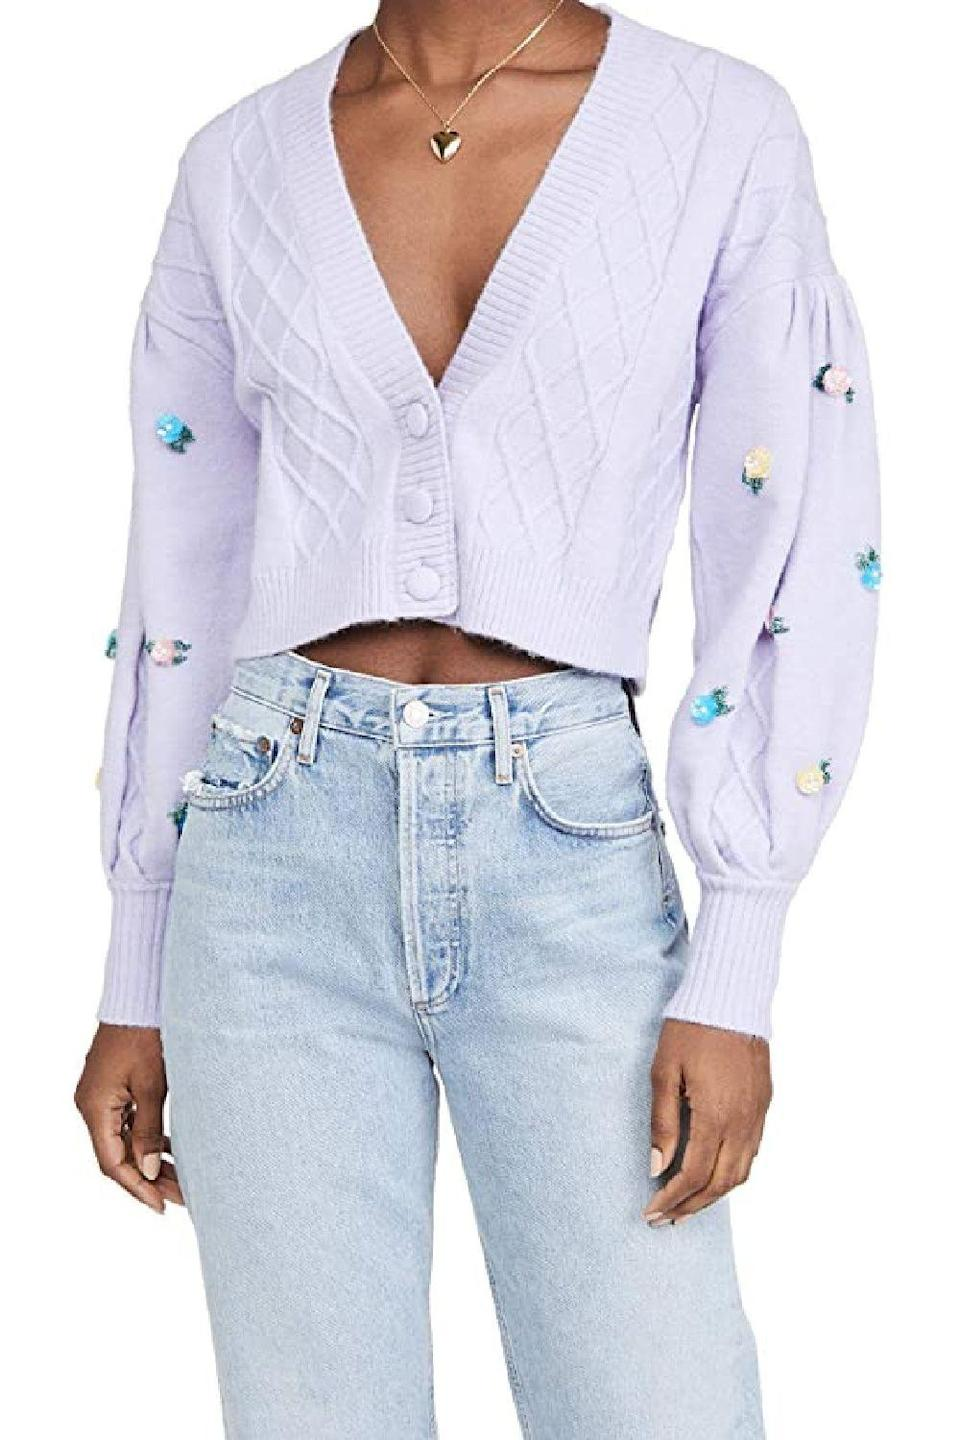 """<p><strong>For Love & Lemons</strong></p><p>amazon.com</p><p><strong>$194.00</strong></p><p><a href=""""https://www.amazon.com/dp/B08JXB88BN?tag=syn-yahoo-20&ascsubtag=%5Bartid%7C10049.g.36149947%5Bsrc%7Cyahoo-us"""" rel=""""nofollow noopener"""" target=""""_blank"""" data-ylk=""""slk:Shop Now"""" class=""""link rapid-noclick-resp"""">Shop Now</a></p><p>Not your grandma's fave floral sweater, this cable knit cropped cardigan is much cooler (no offense, g-ma) and perfect for wearing with jeans or layering over dresses.</p>"""